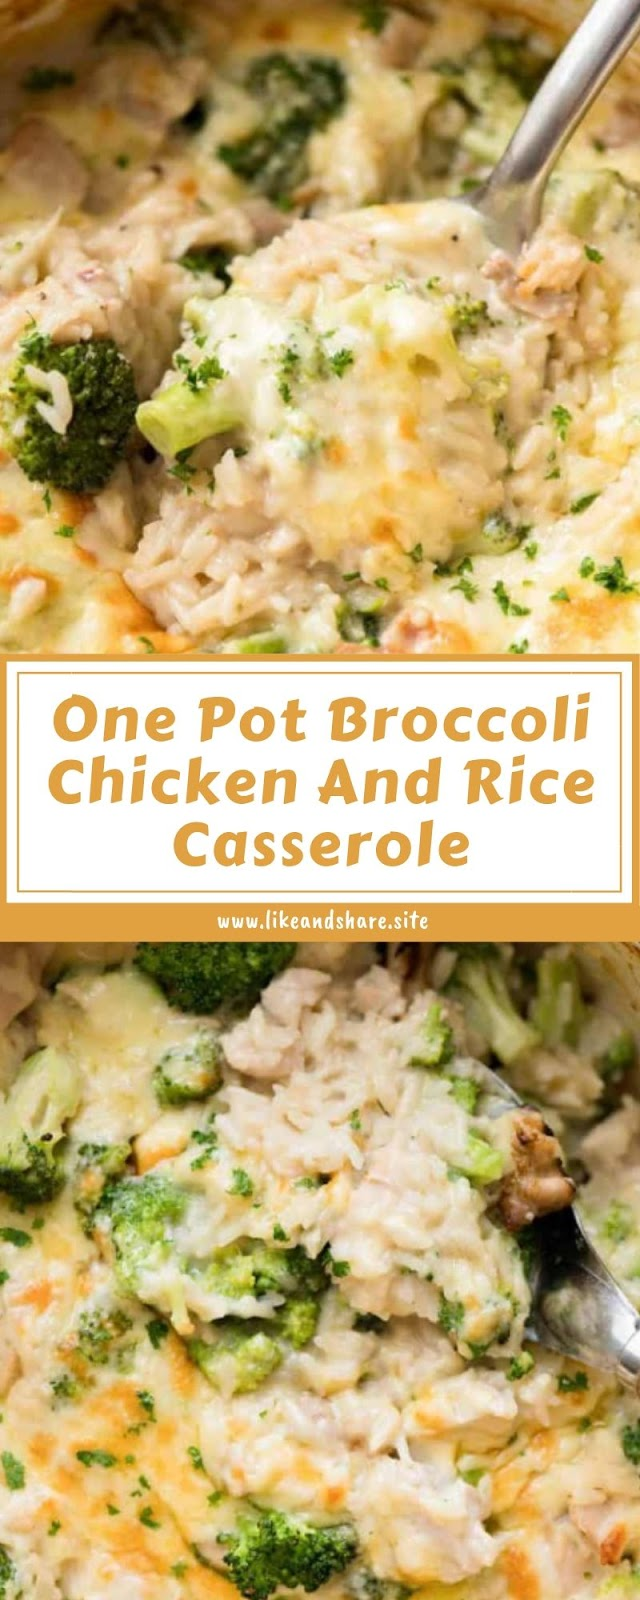 One Pot Broccoli Chicken And Rice Casserole